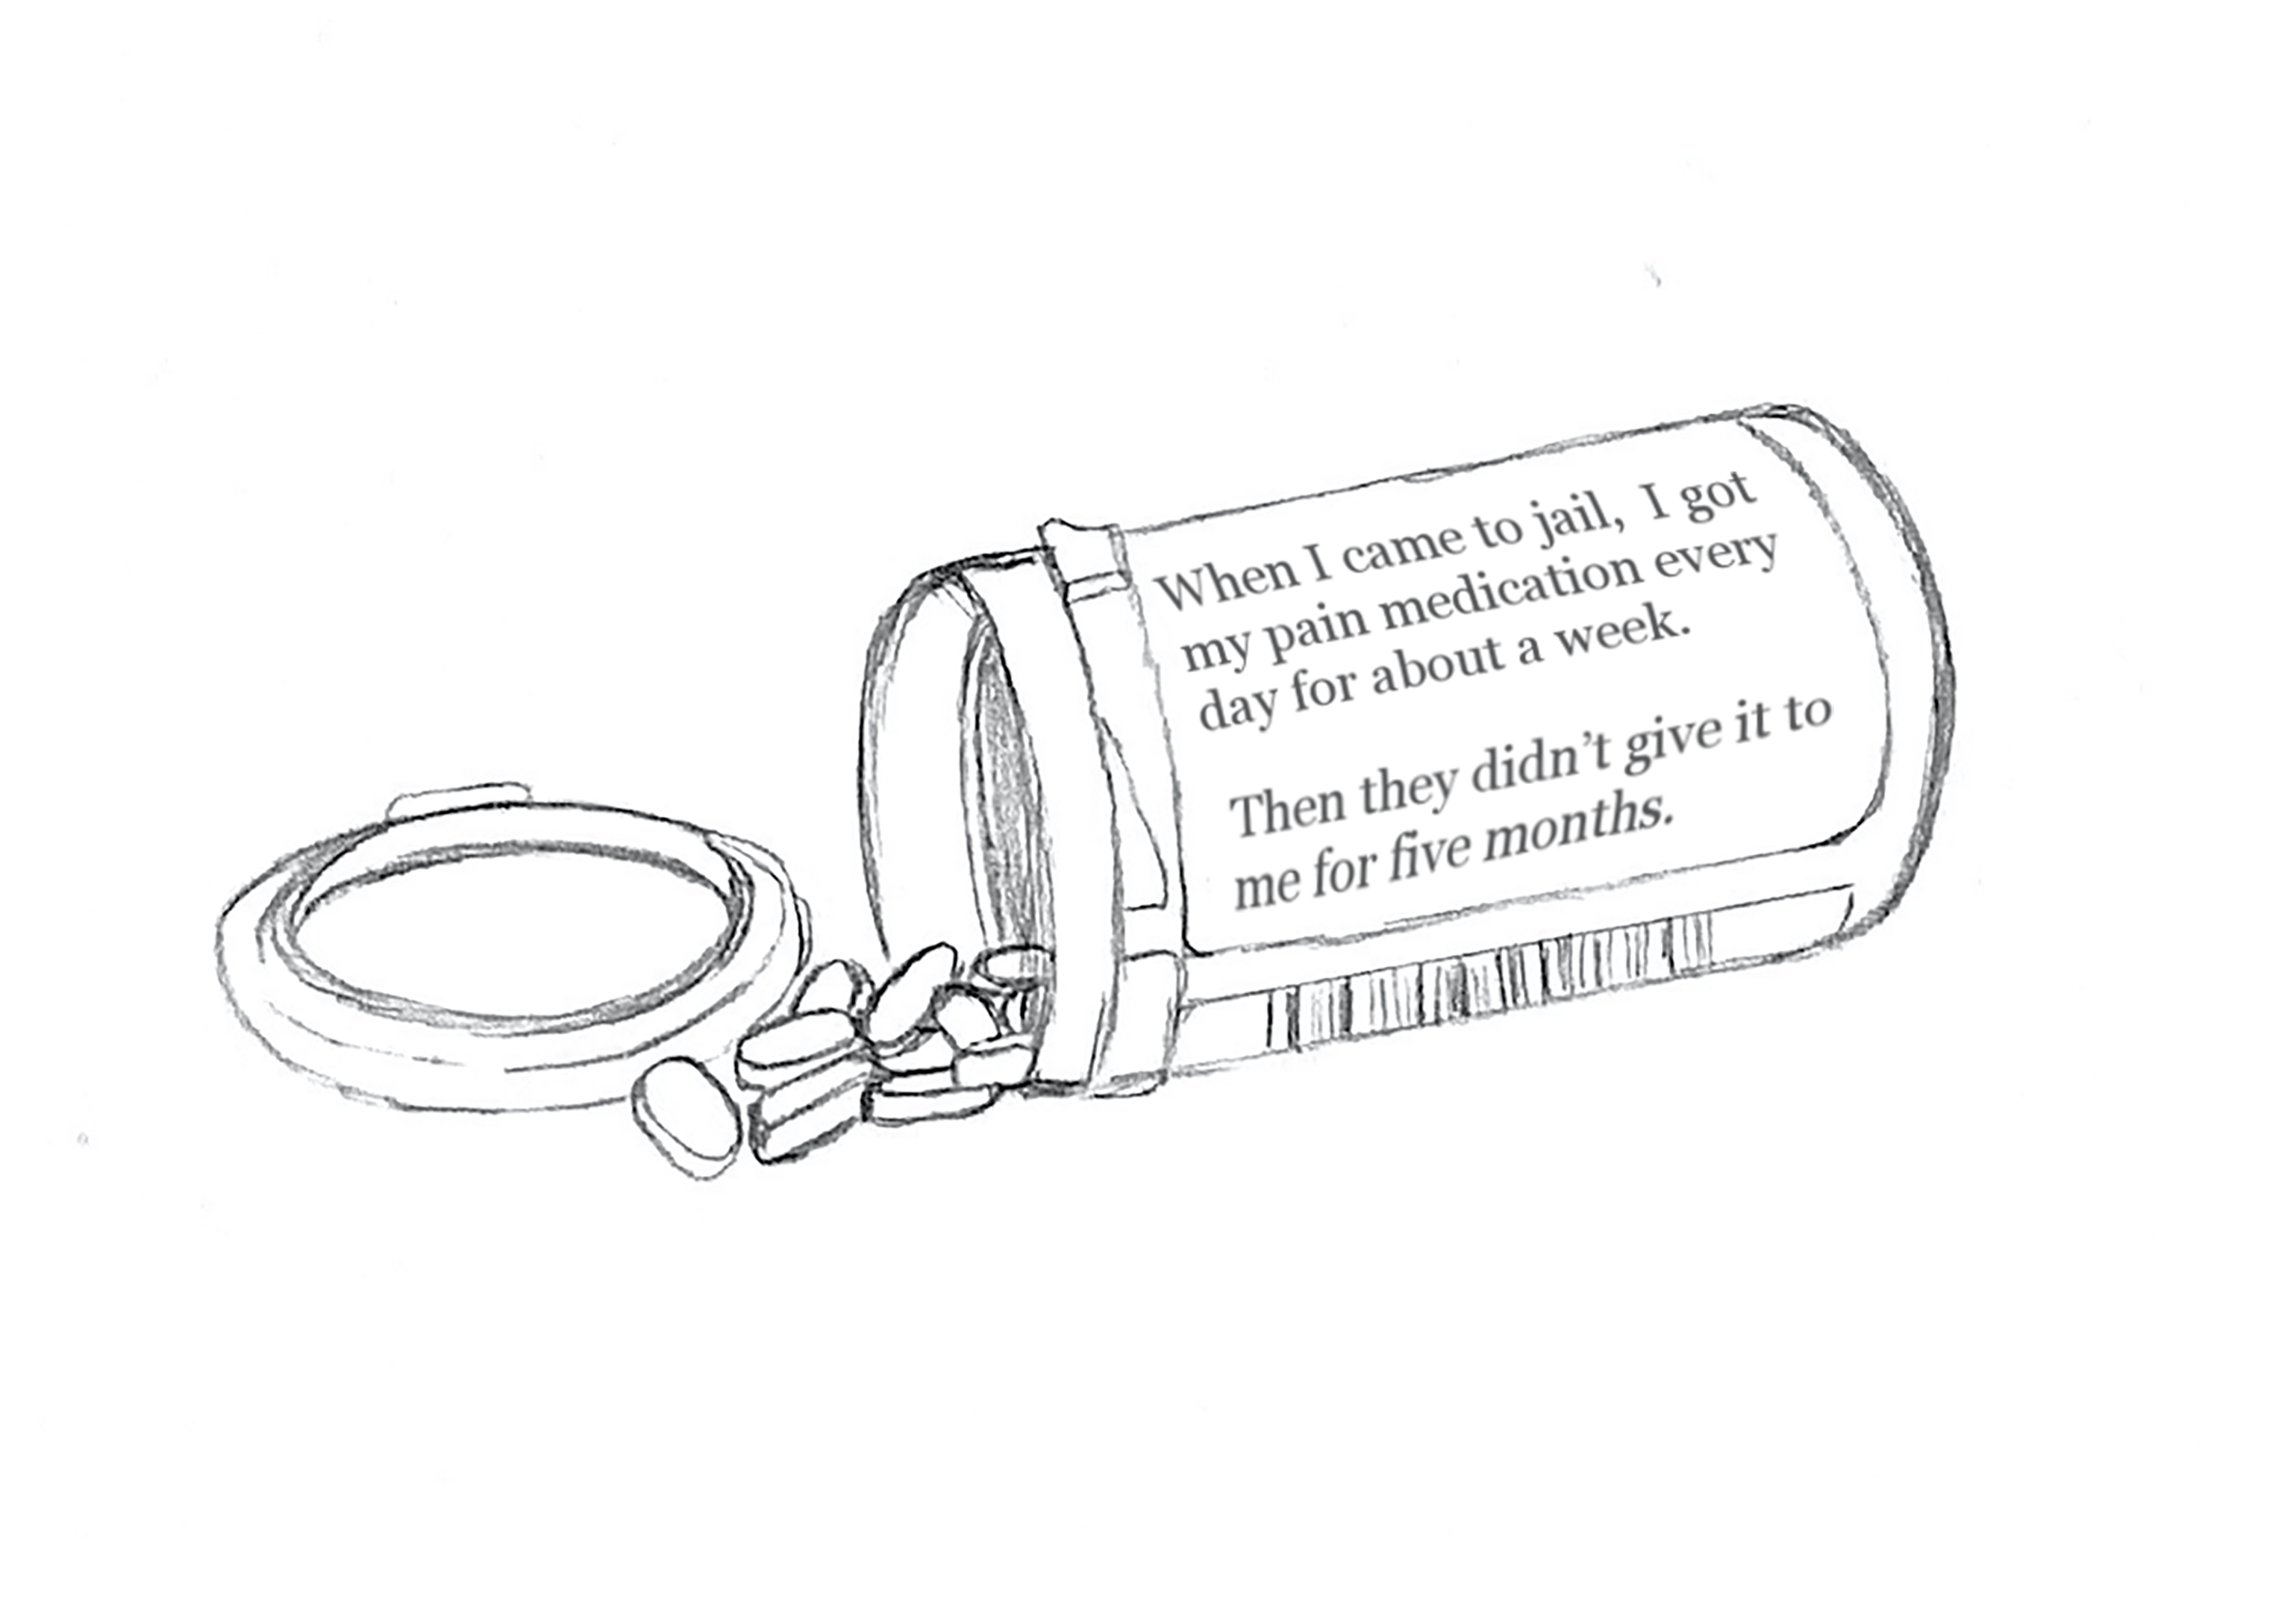 A black line drawing of a prescription medication bottle lying on a white background.The bottle is o